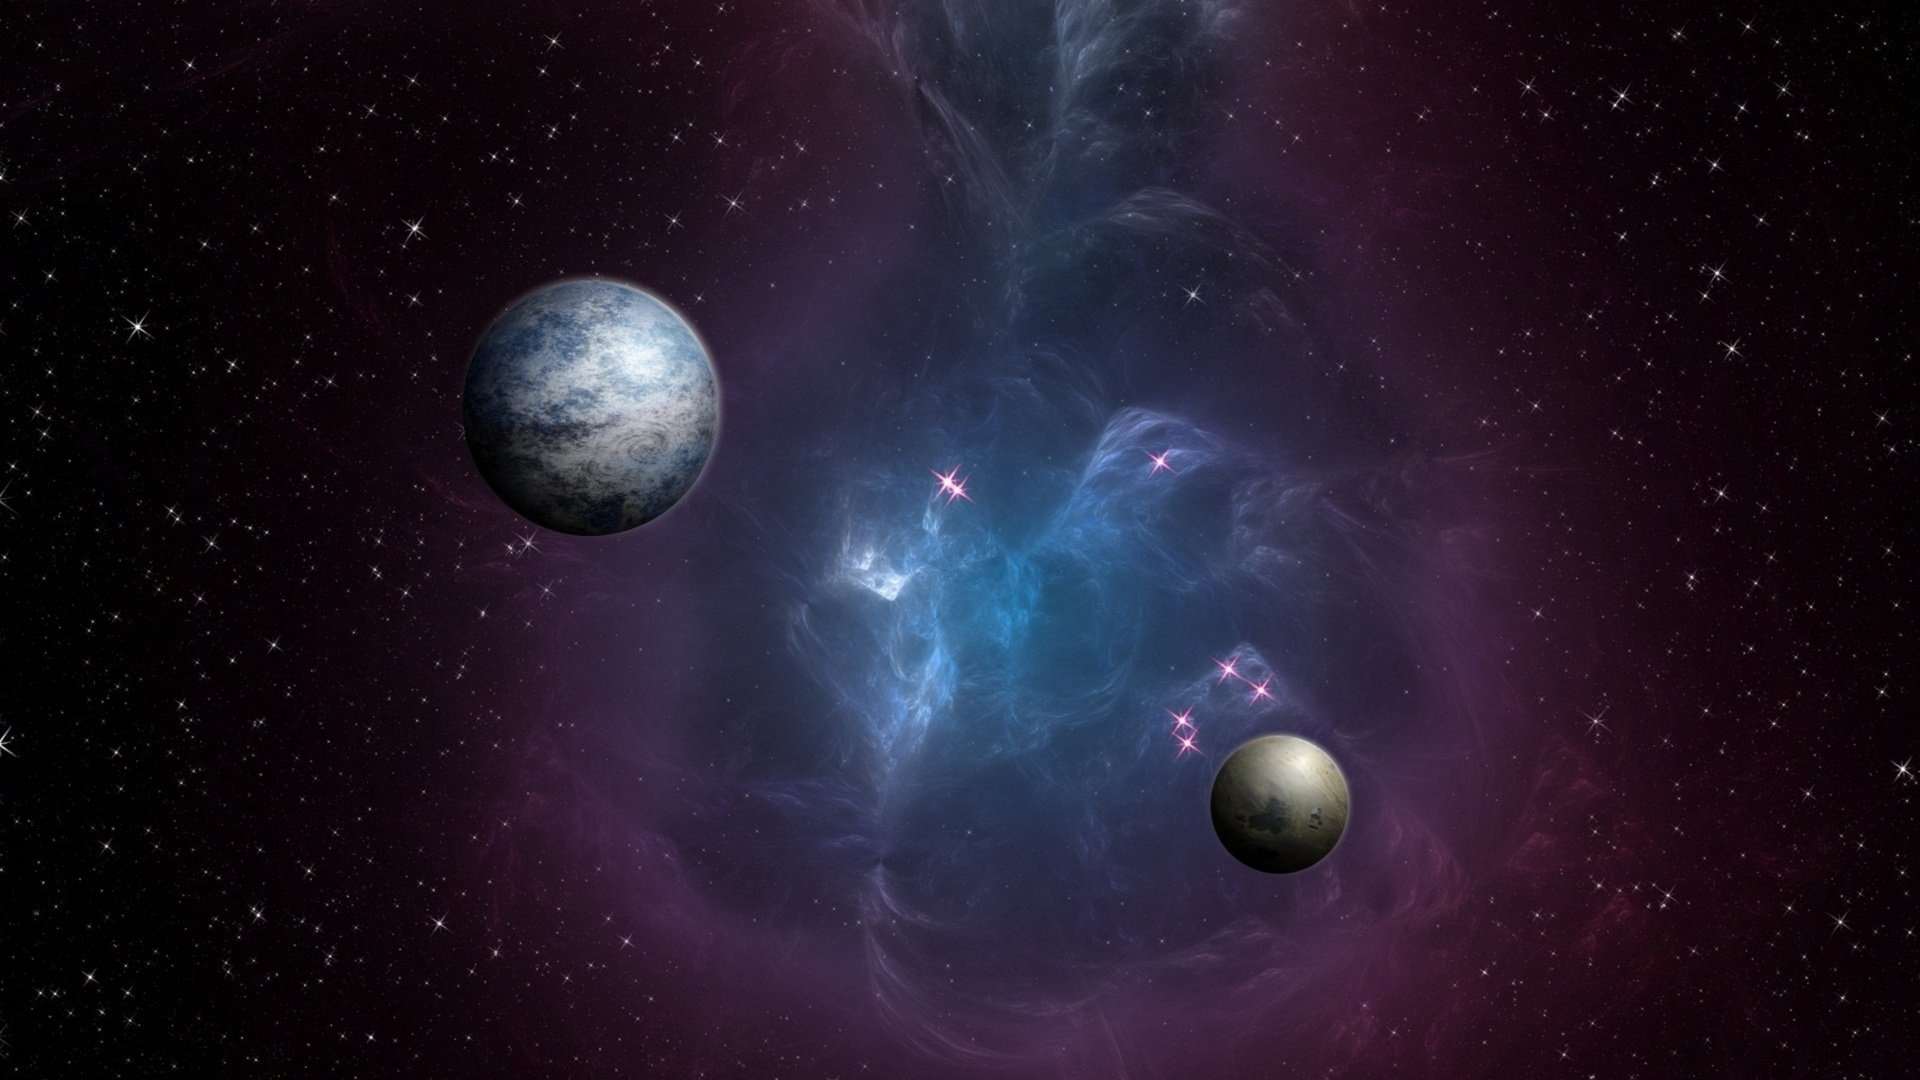 Space Universe Galaxy Cosmos Astronomy Planet Star Colors